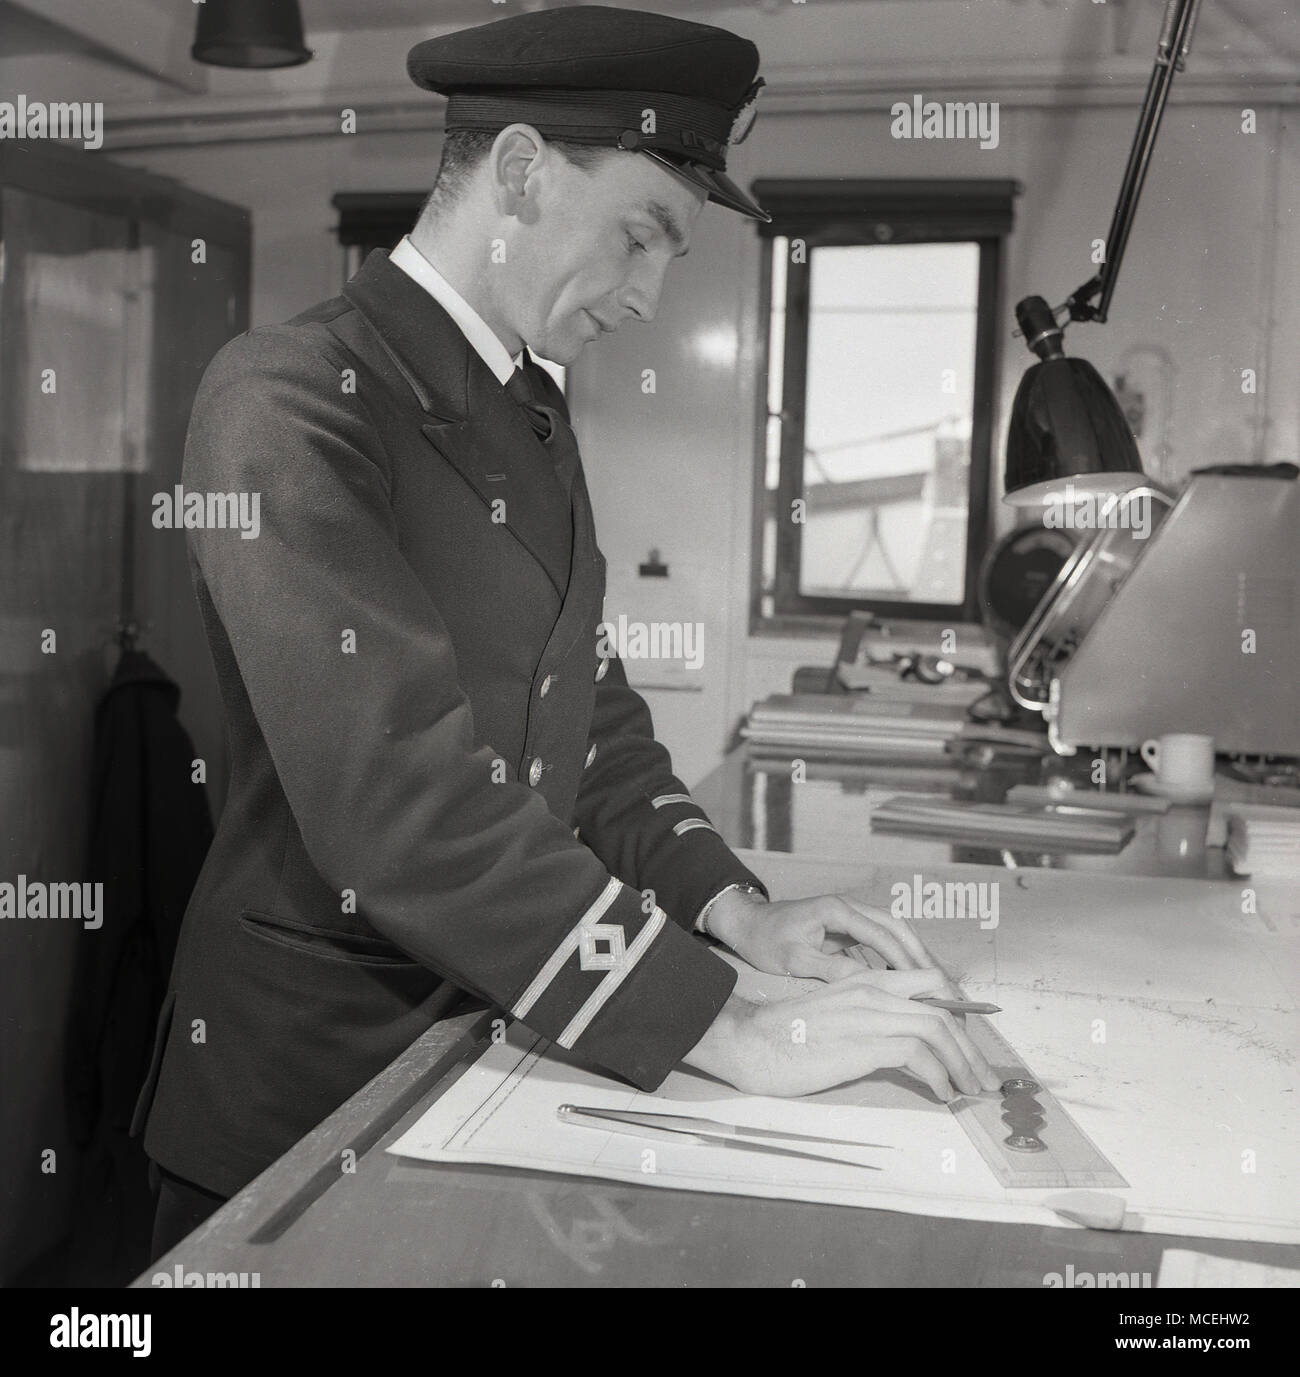 1950s, historical, second officer or navigator in his uniform onboard the deck of a steamship, working on the navigational charts to establish the ship's exact position. - Stock Image